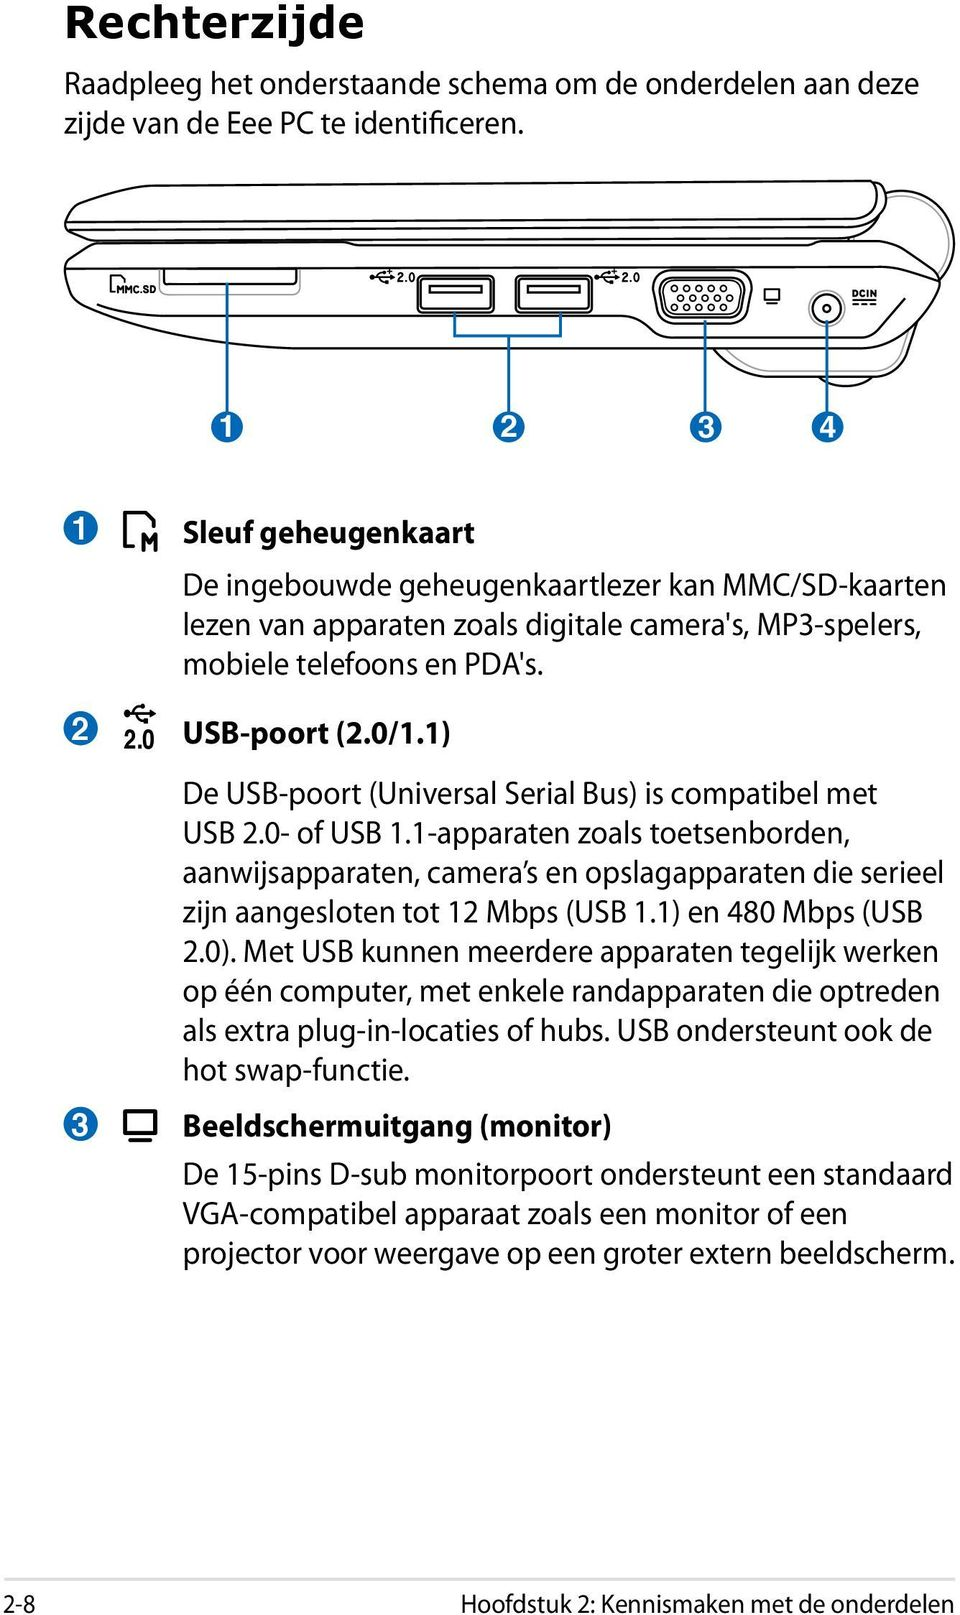 1) De USB-poort (Universal Serial Bus) is compatibel met USB 2.0- of USB 1.